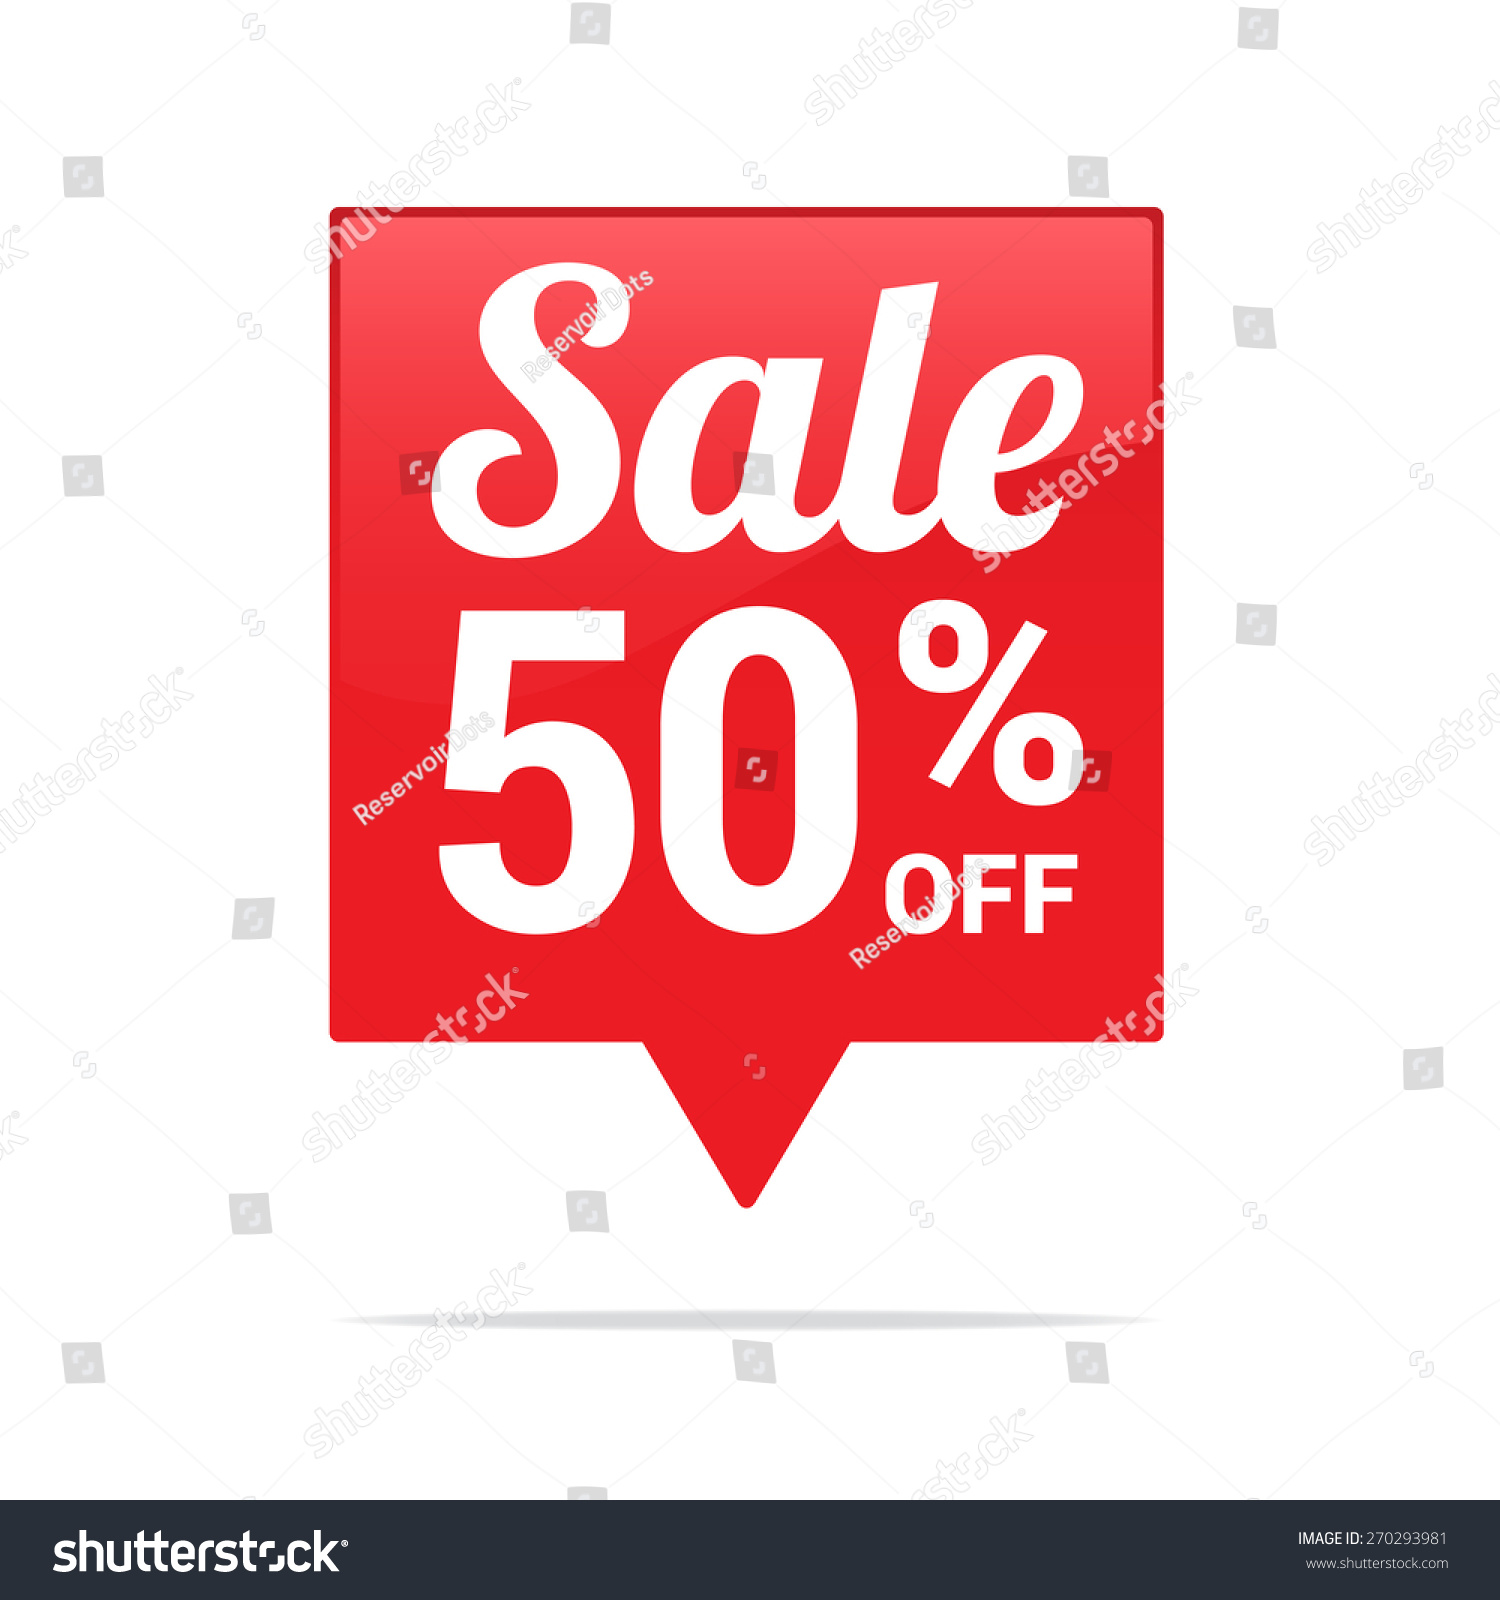 50% Off Storewide Sales Our 50% off Storewide Sale runs from 9 a.m p.m. the first Saturday of the month. Sales exclude Goodwill Outlet Stores and only apply to items originally purchased on the date of the sale.